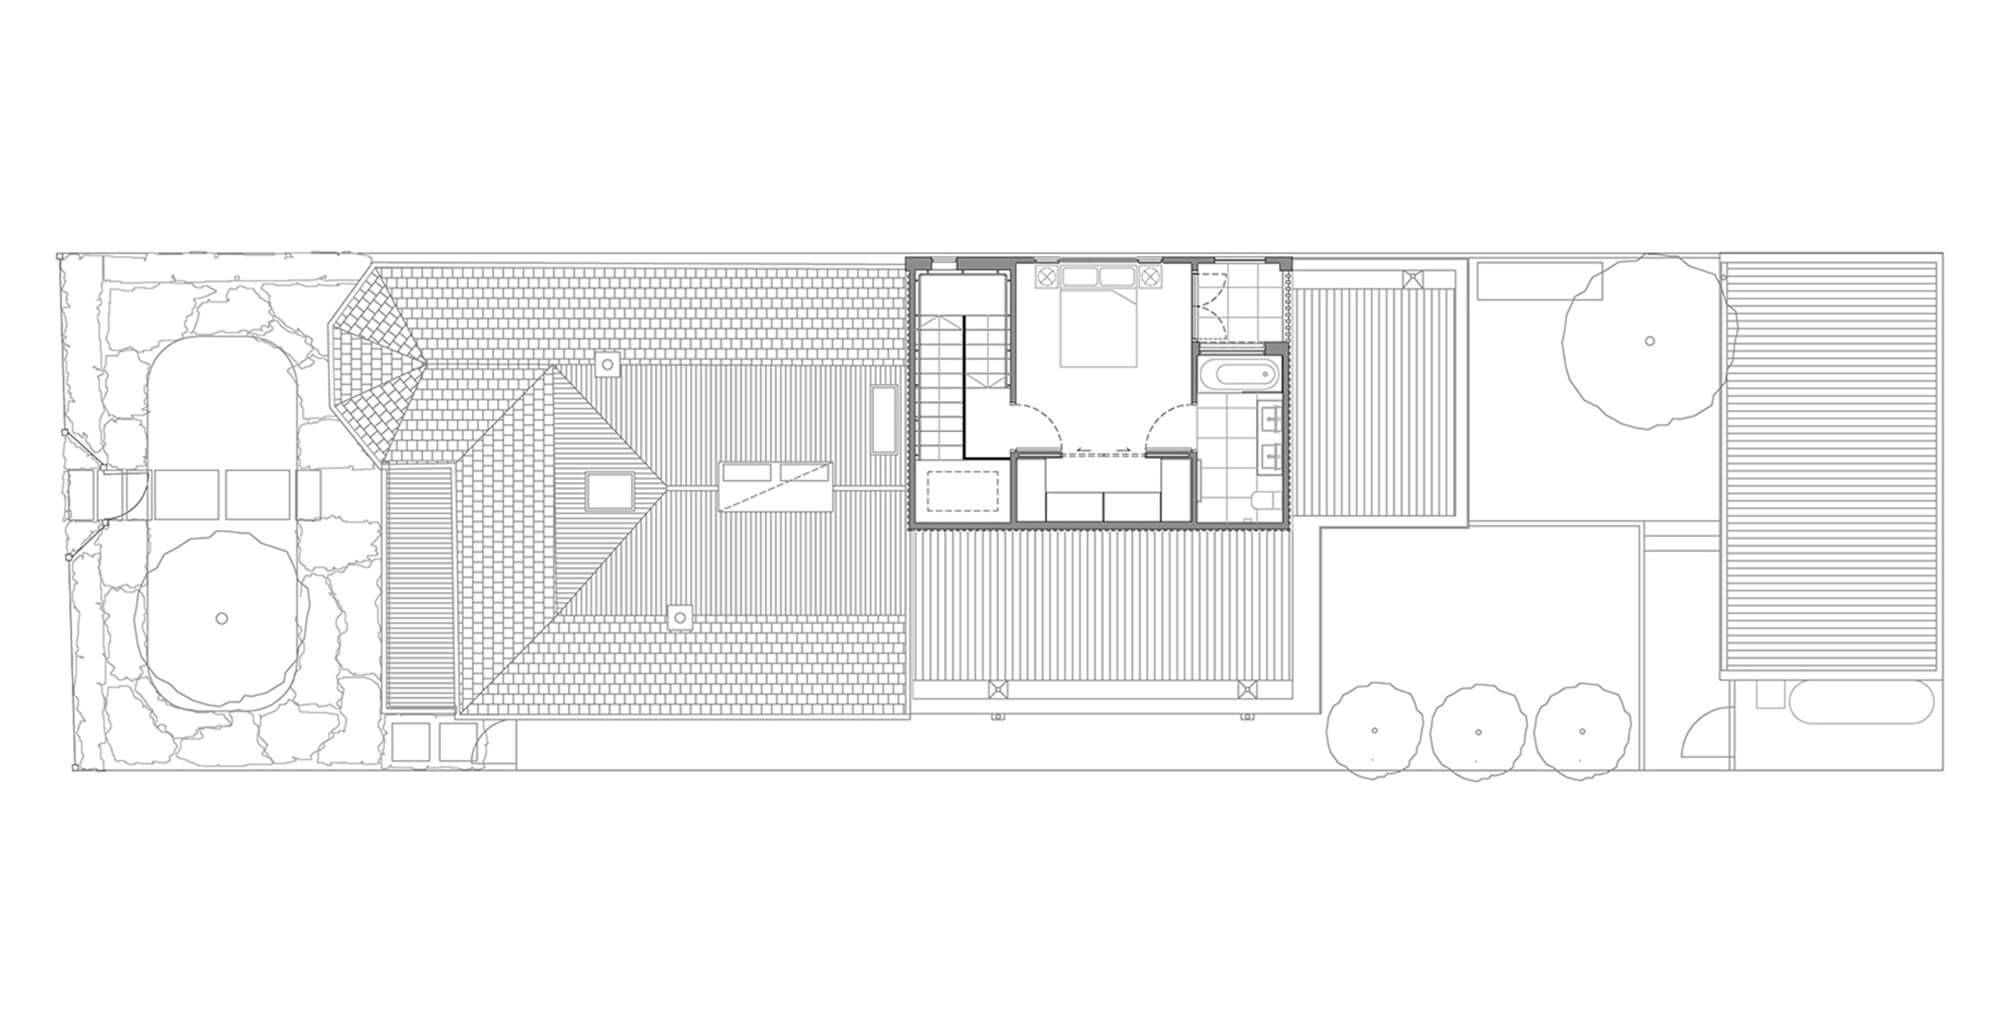 Upper floor bedroom floor plan